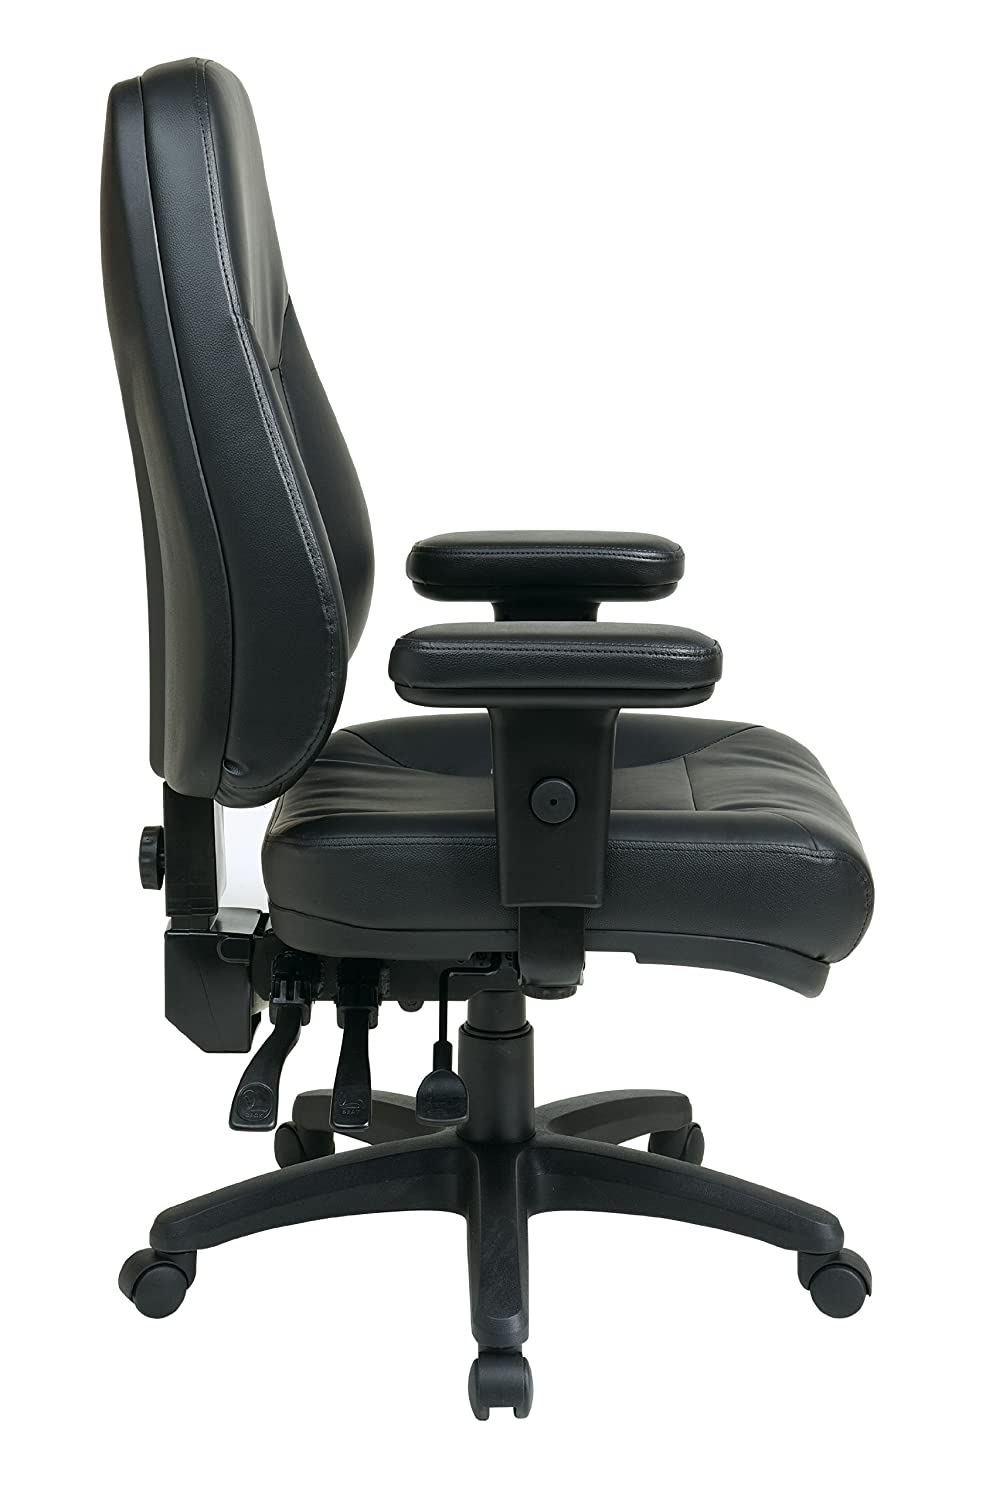 cool ergonomic office desk chair.  desk amazoncom office star professional dual function ergonomic high back eco  leather chair black kitchen u0026 dining inside cool desk chair